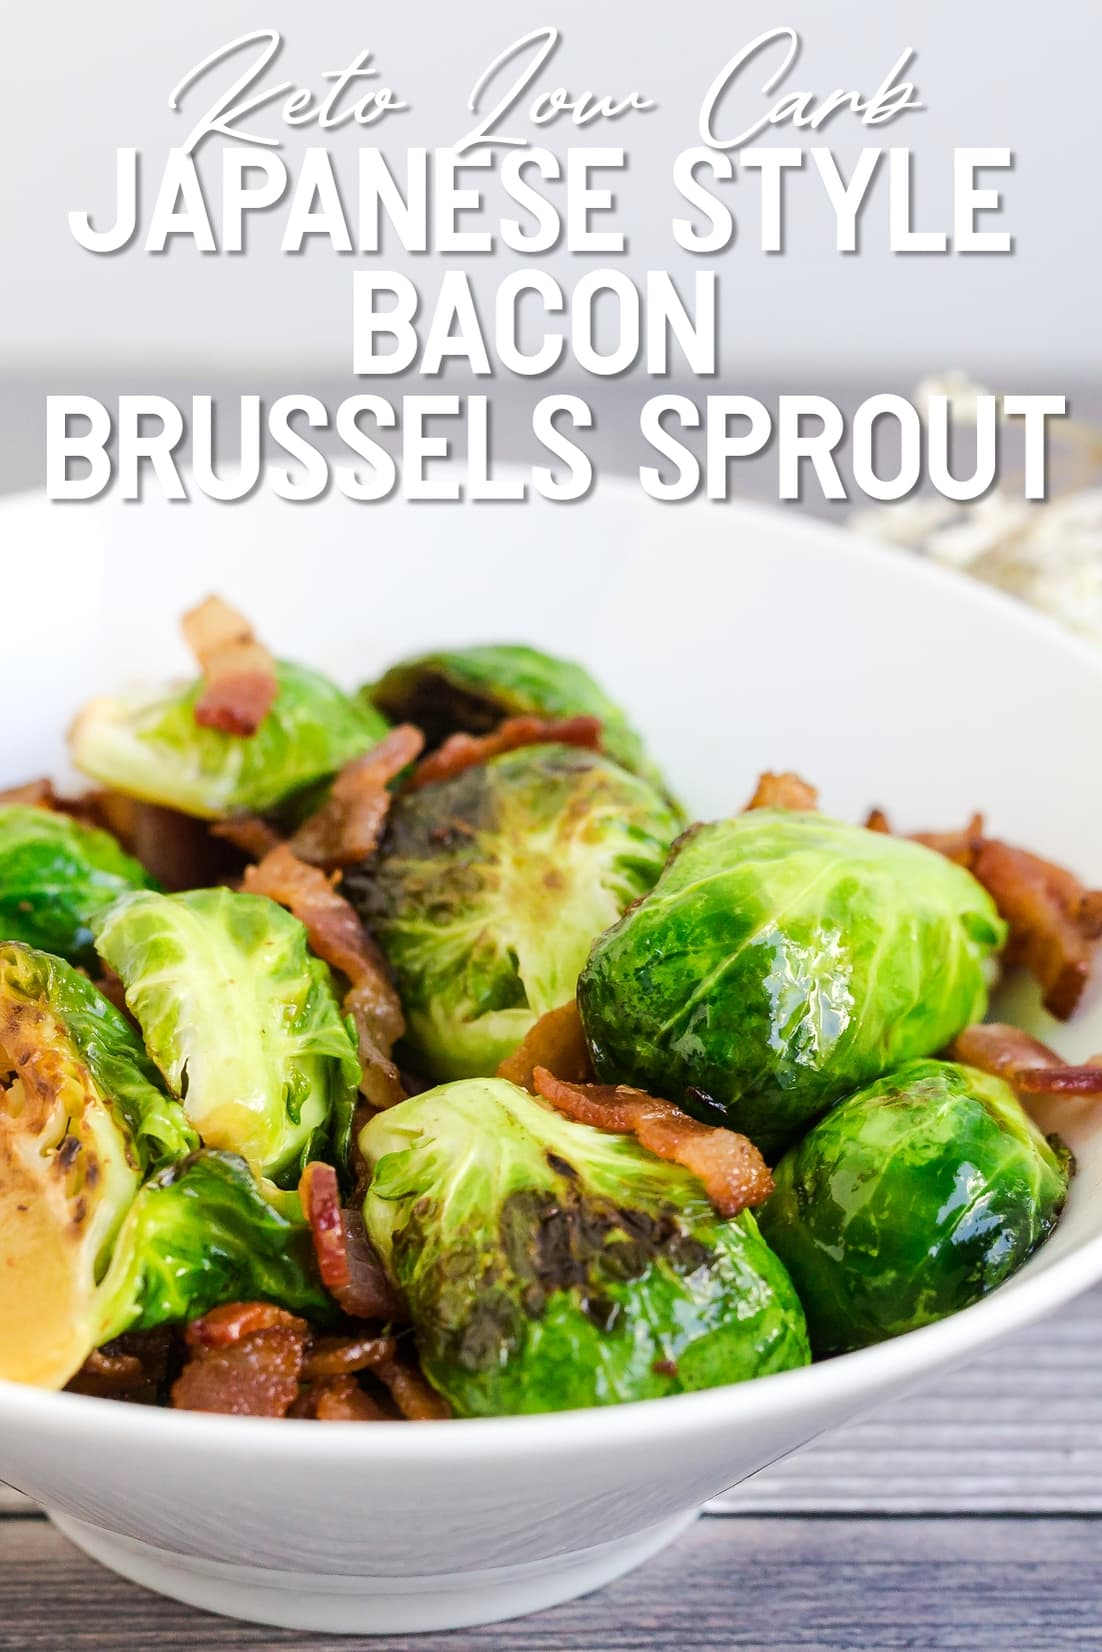 Keto Low Carb Japanese Style Bacon Brussels Sprout close up side